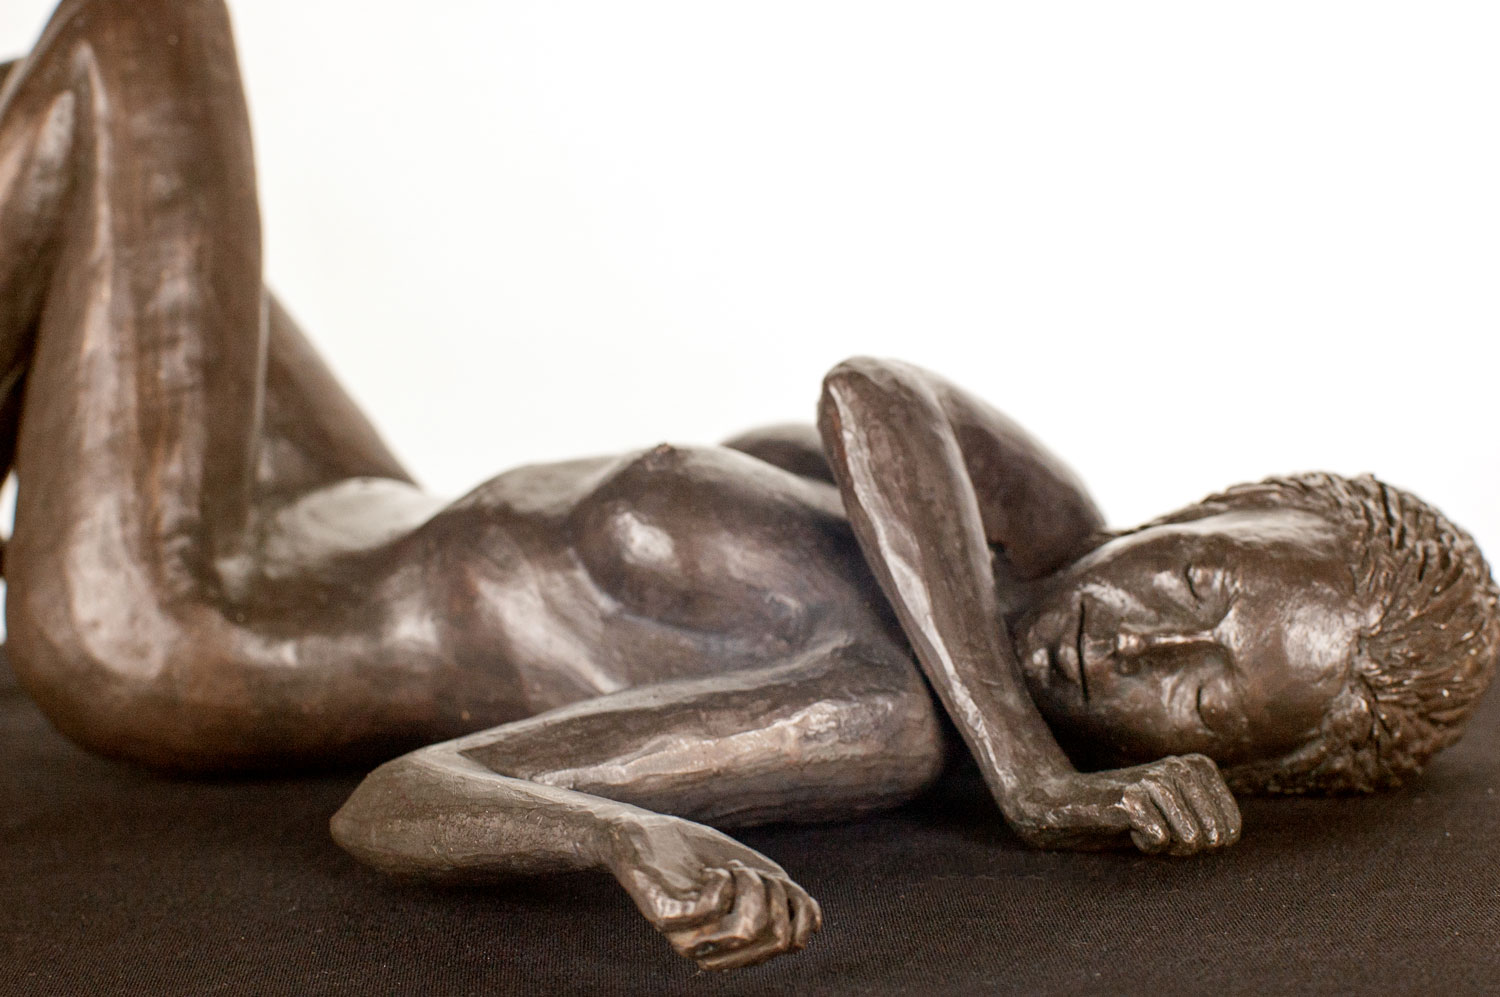 acquiescence_bronze_sculpture_5.jpg